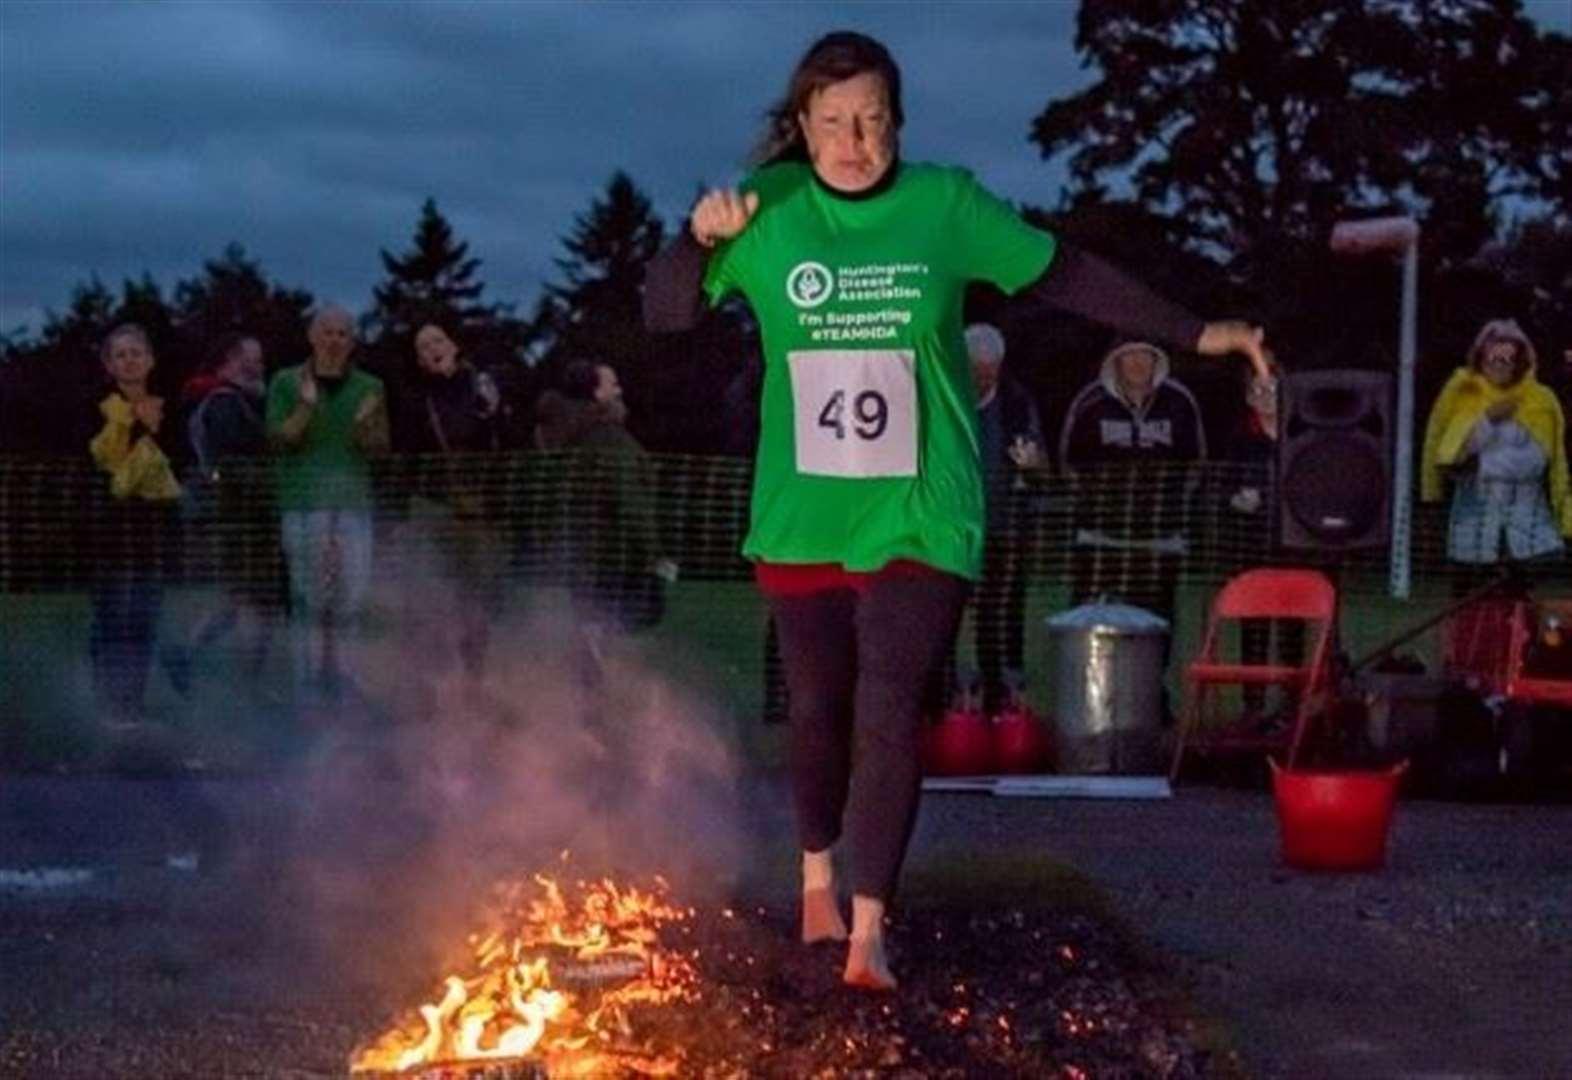 Firewalkers raise £14,000 for good causes